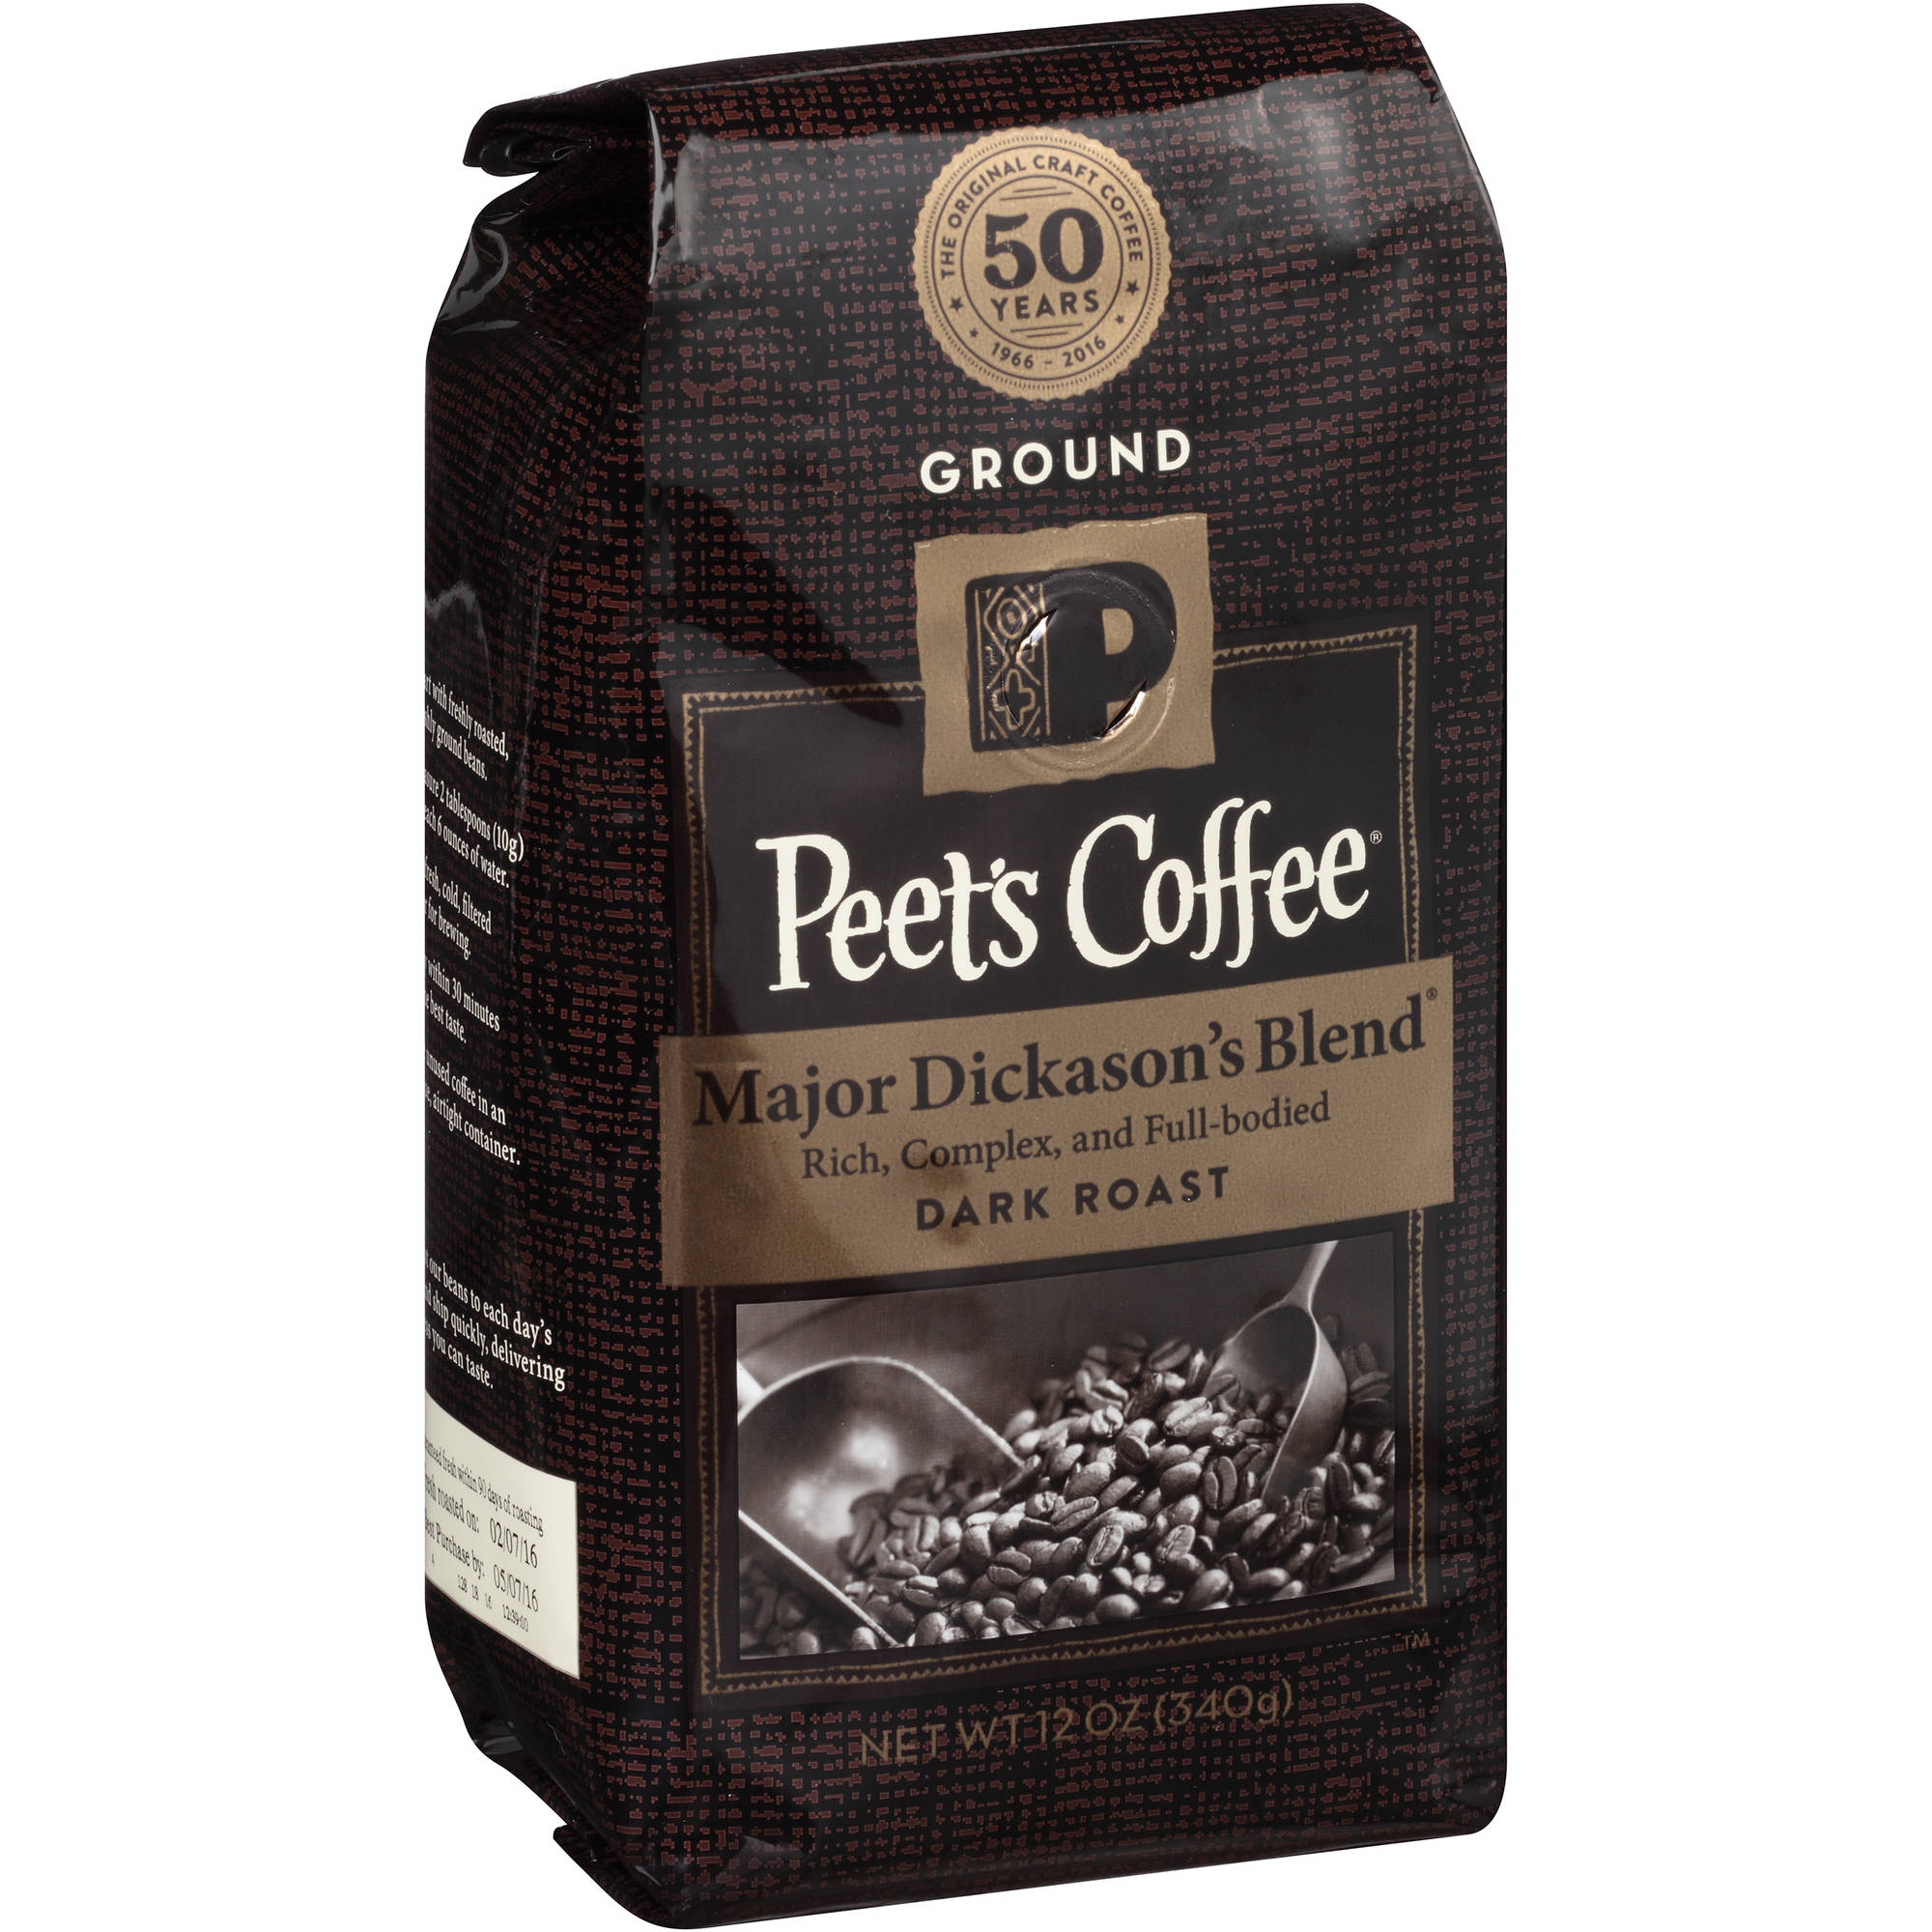 Peet's Coffee Major Dickason's Blend Dark Roast Ground Coffee, 12 oz